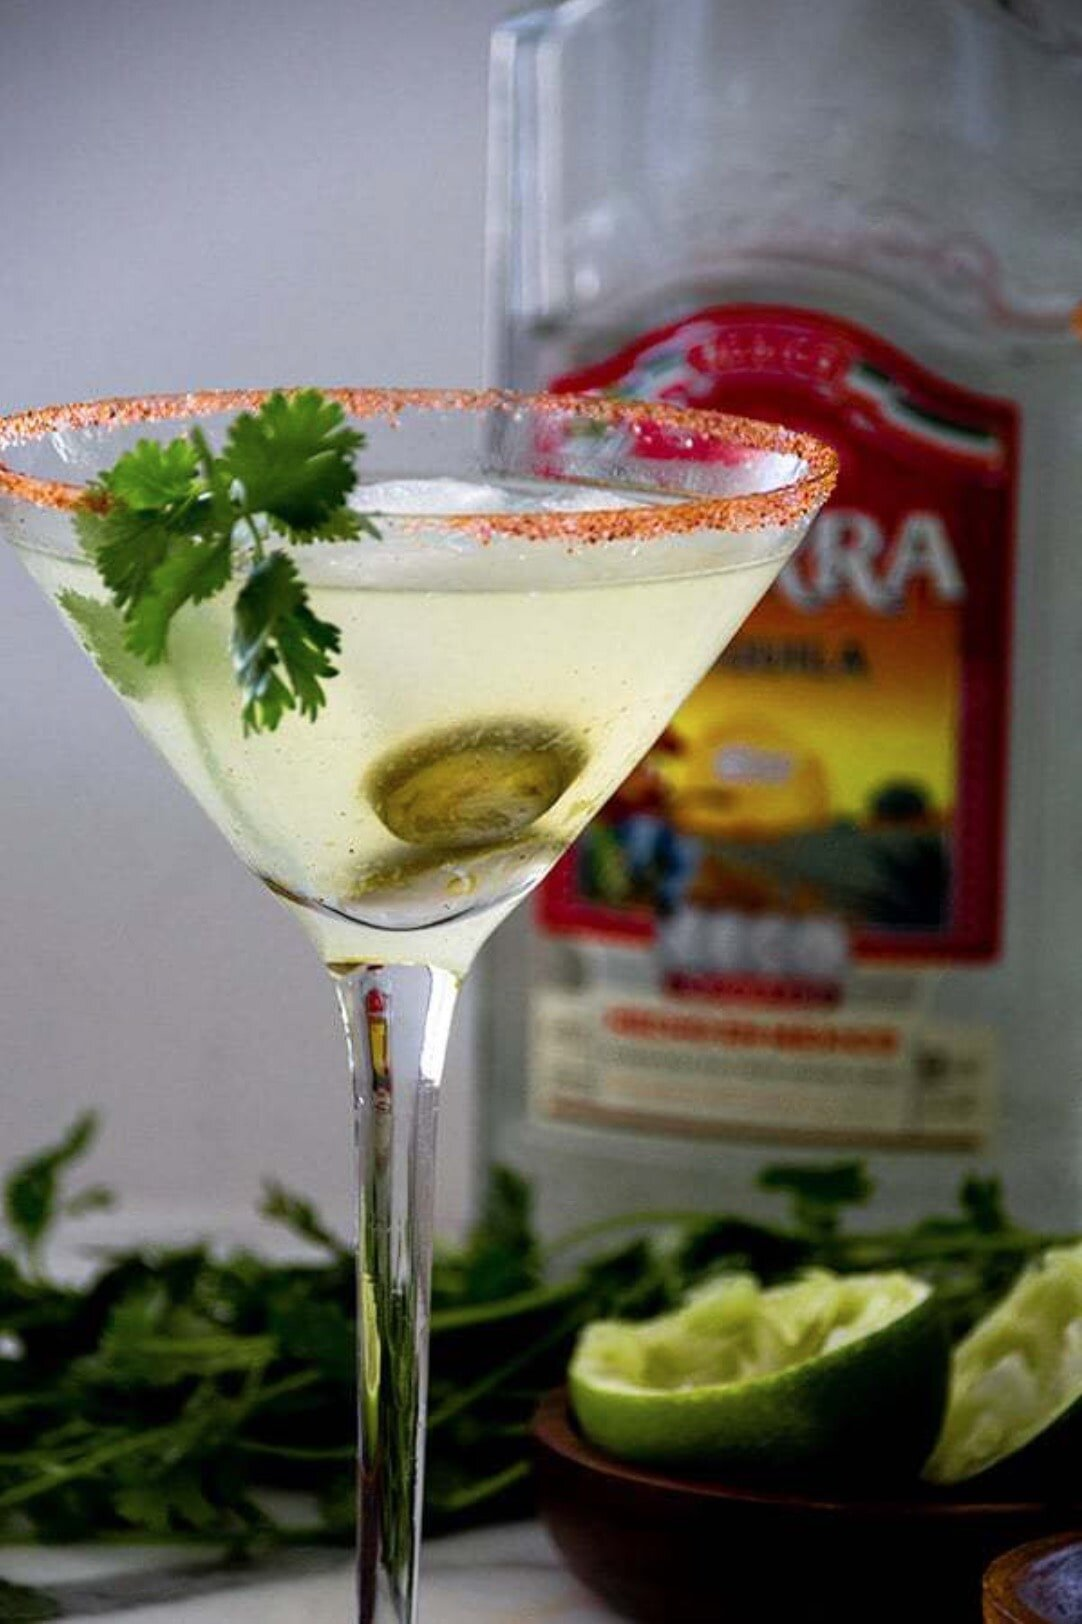 With Cinco de Mayo coming up, you may be wishing for a margarita...grab a glass! Follow these recipes for your keto margarita and other low carb alcoholic drinks to keep you in ketosis! Cheers! #mixeddrinks #cocktails #ketococktails #ketoalcoholdrinks #mixeddrinkalcoholic #margarita #mojitorecipe #cosmopolitandrink #vodkadrinks #bloodymaryrecipe